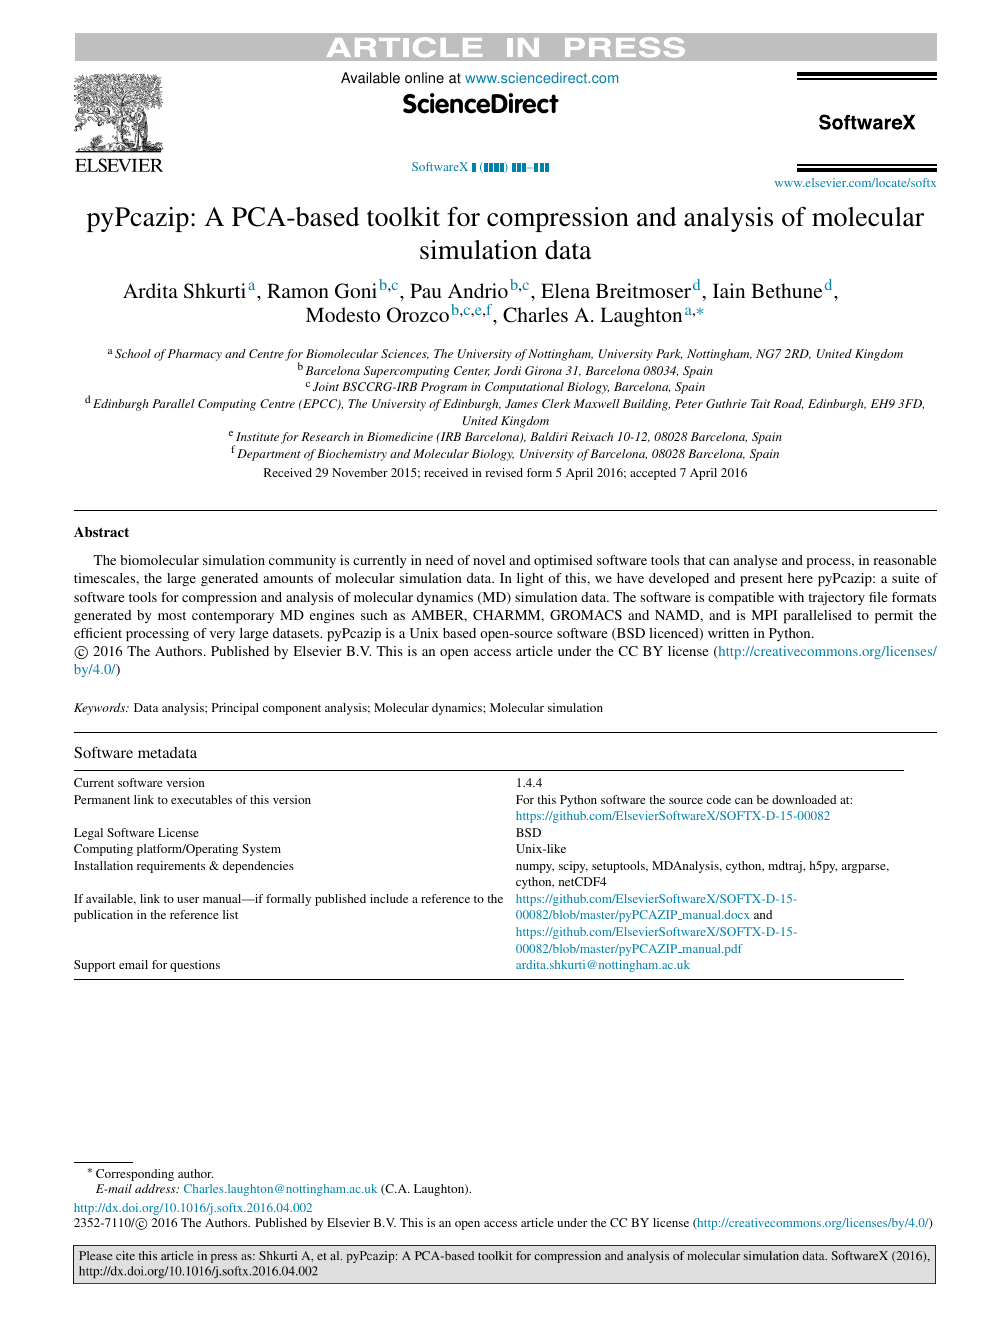 pyPcazip: A PCA-based toolkit for compression and analysis of